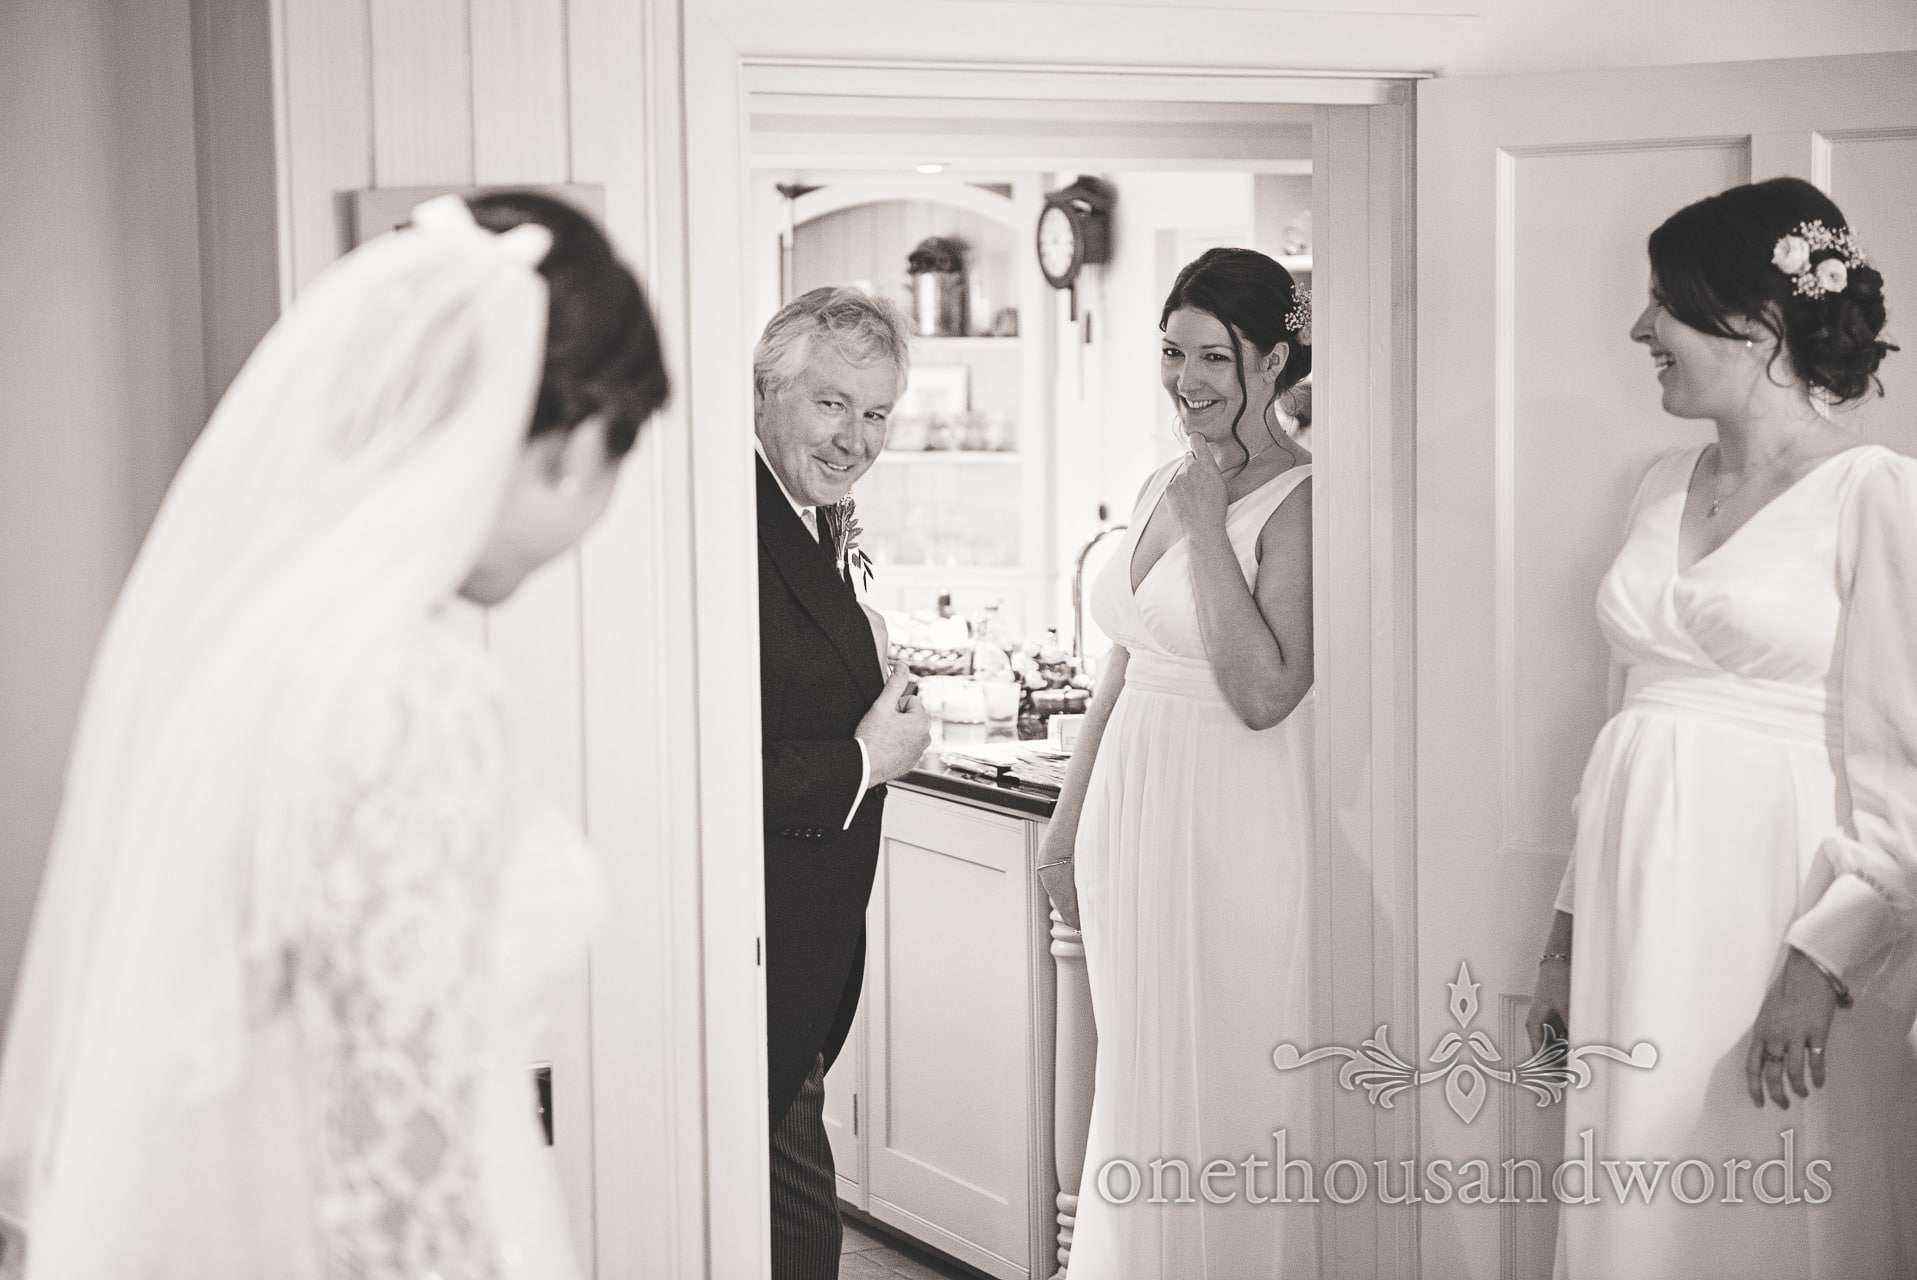 Father of bride looks at daughter in wedding dress for first time